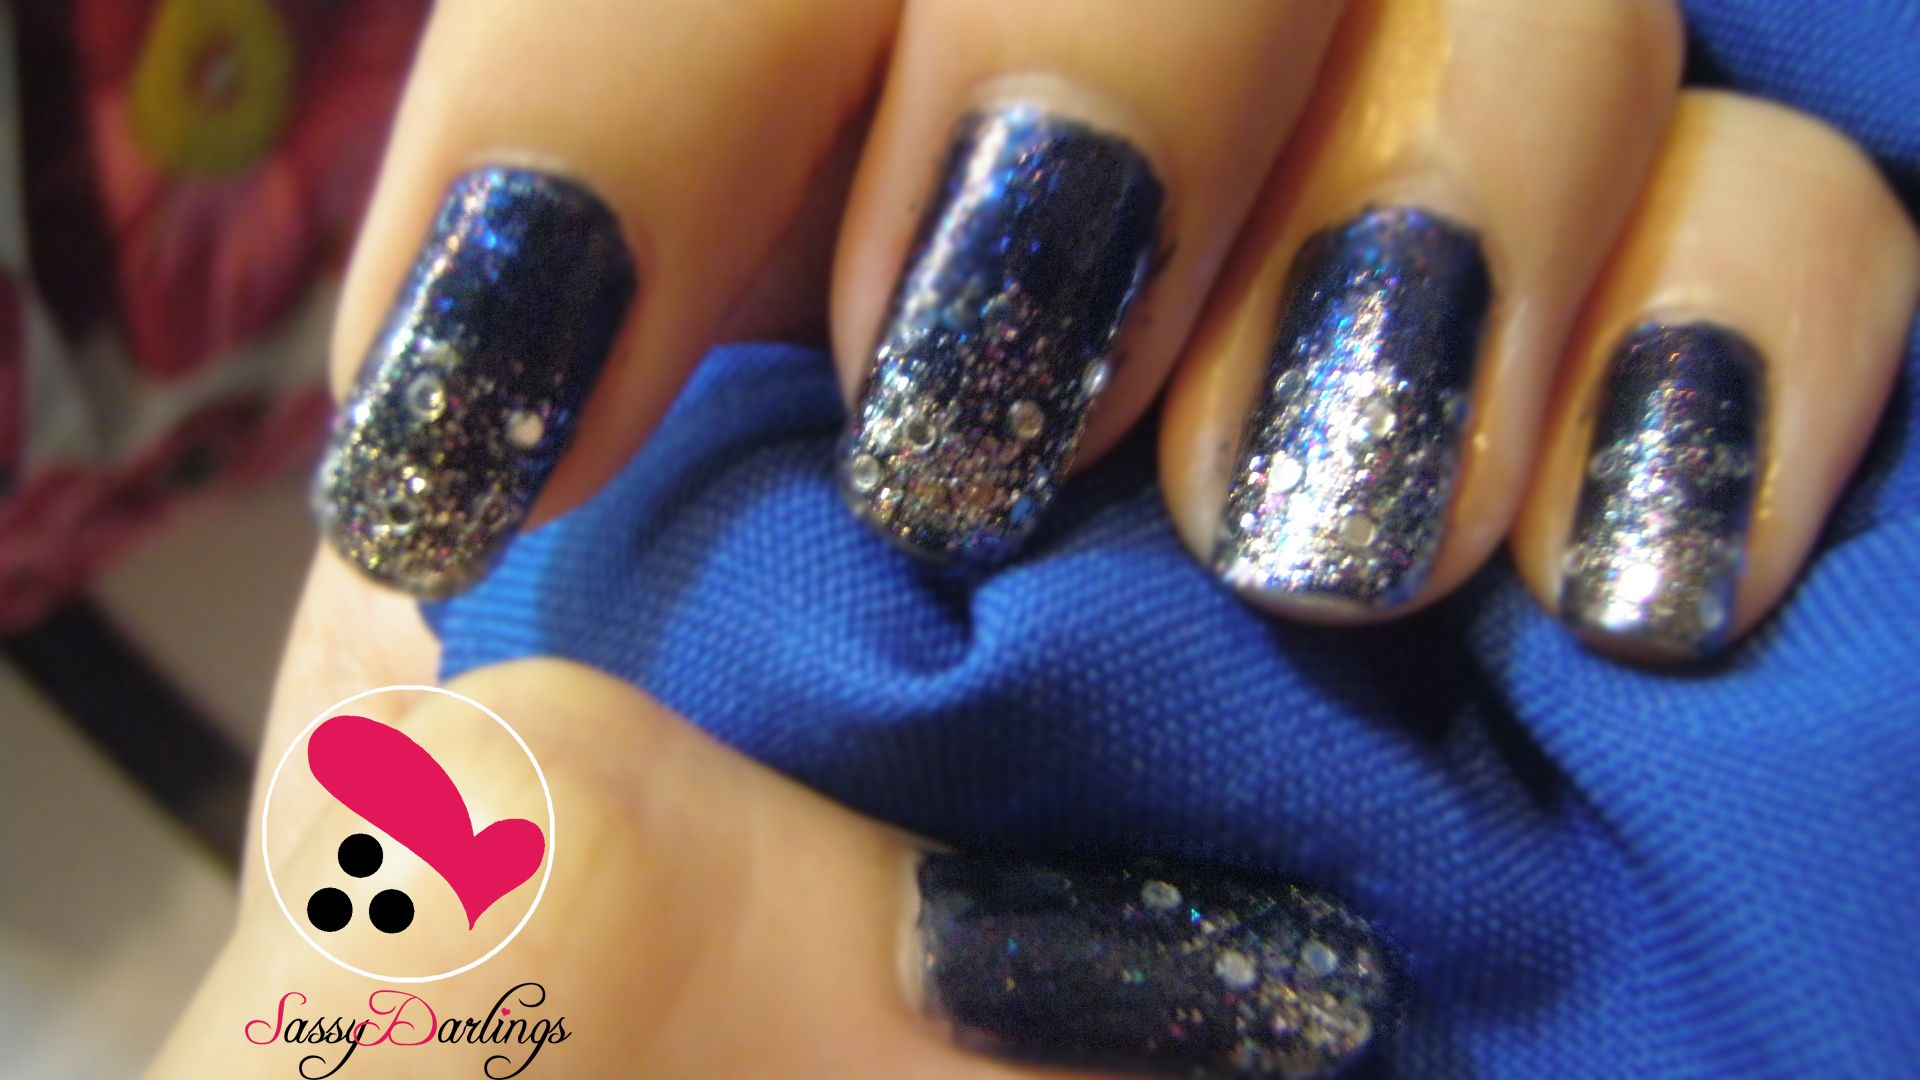 Manicure Designs For Prom Royal Blue Royal Nail Art Blue 3d Nails